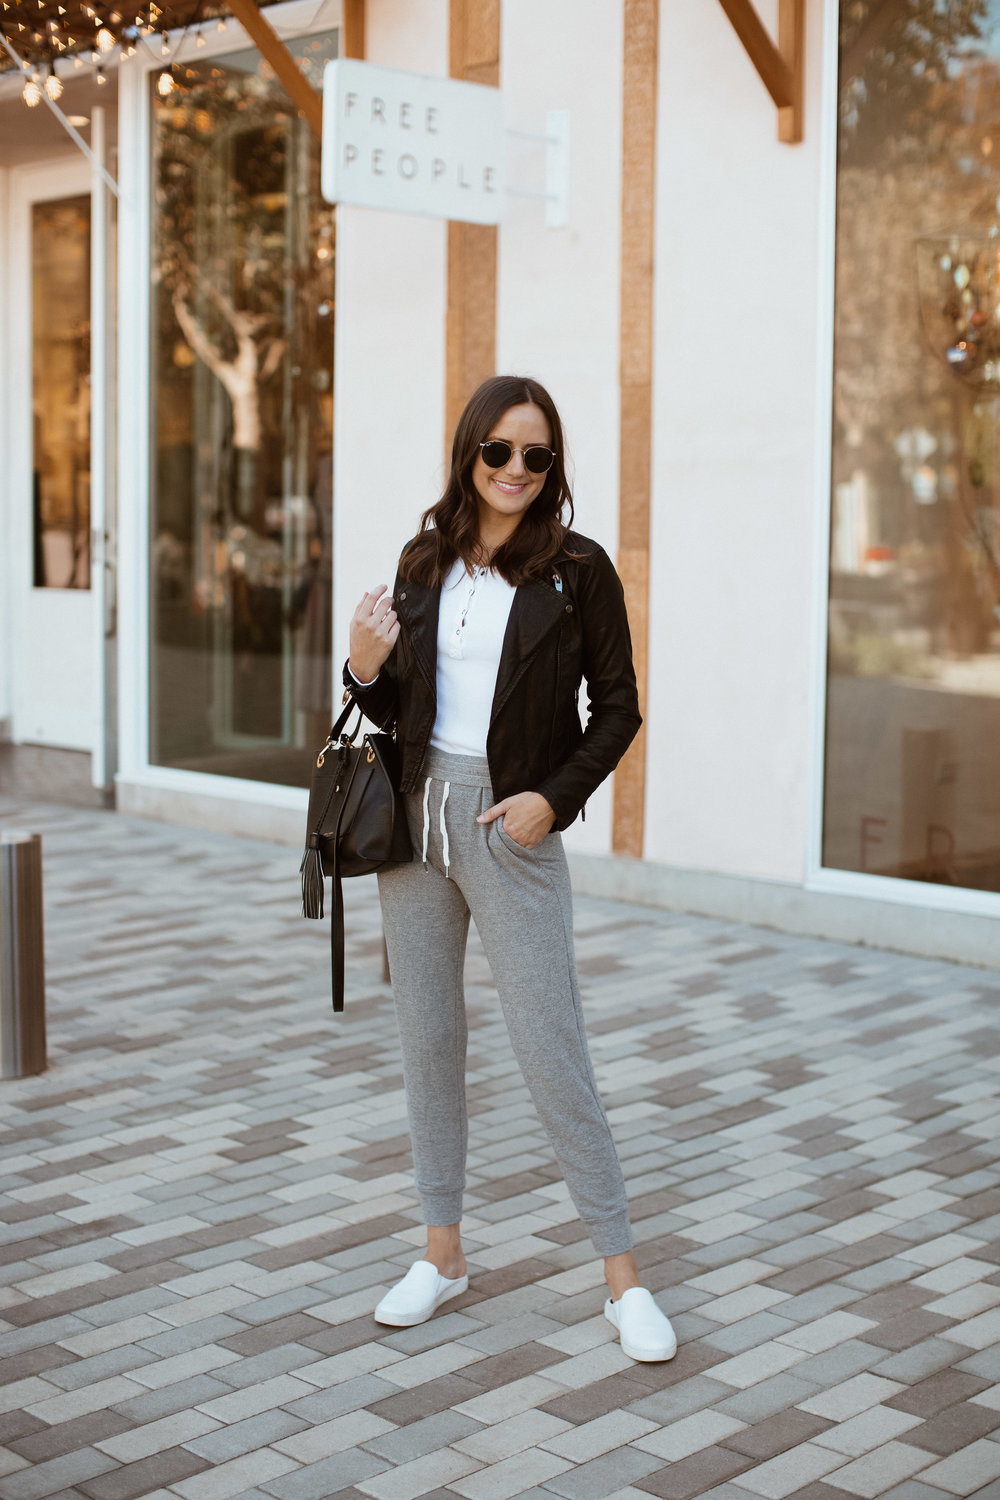 Shop the Look Below.  Splendid Top  c/o |  Blanknyc Jacket  |  Splendid Pants  c/o |  Frye Sneakers  |  Henri Bendel Bag  c/o (old, linking similar below) |  Ray-Ban Sunglasses